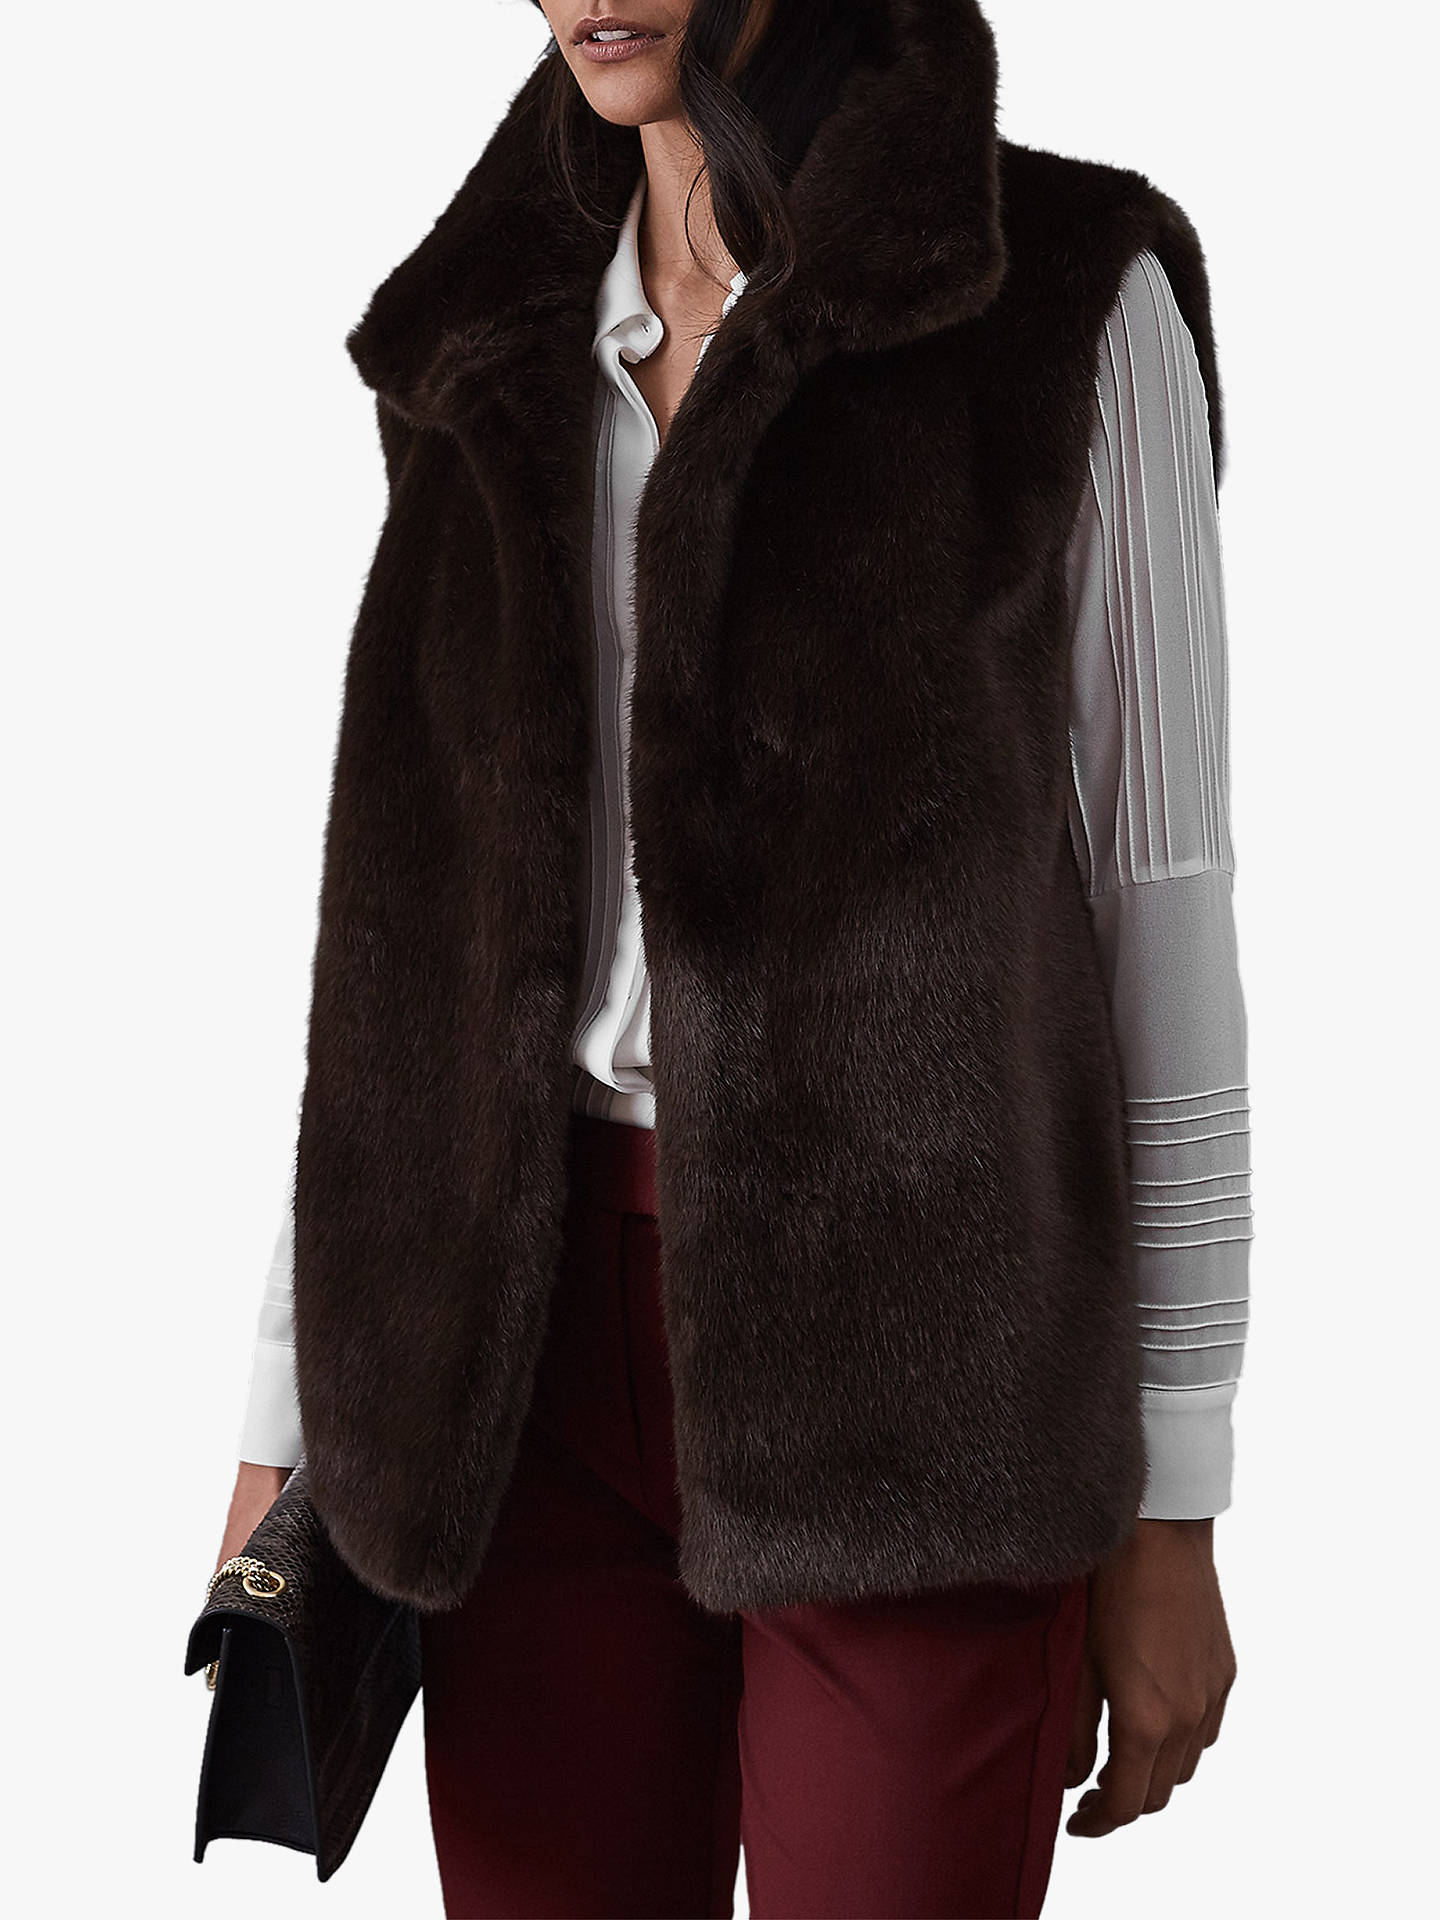 release date 854ca 95aab Reiss Fay Faux Fur Gilet, Chocolate at John Lewis & Partners